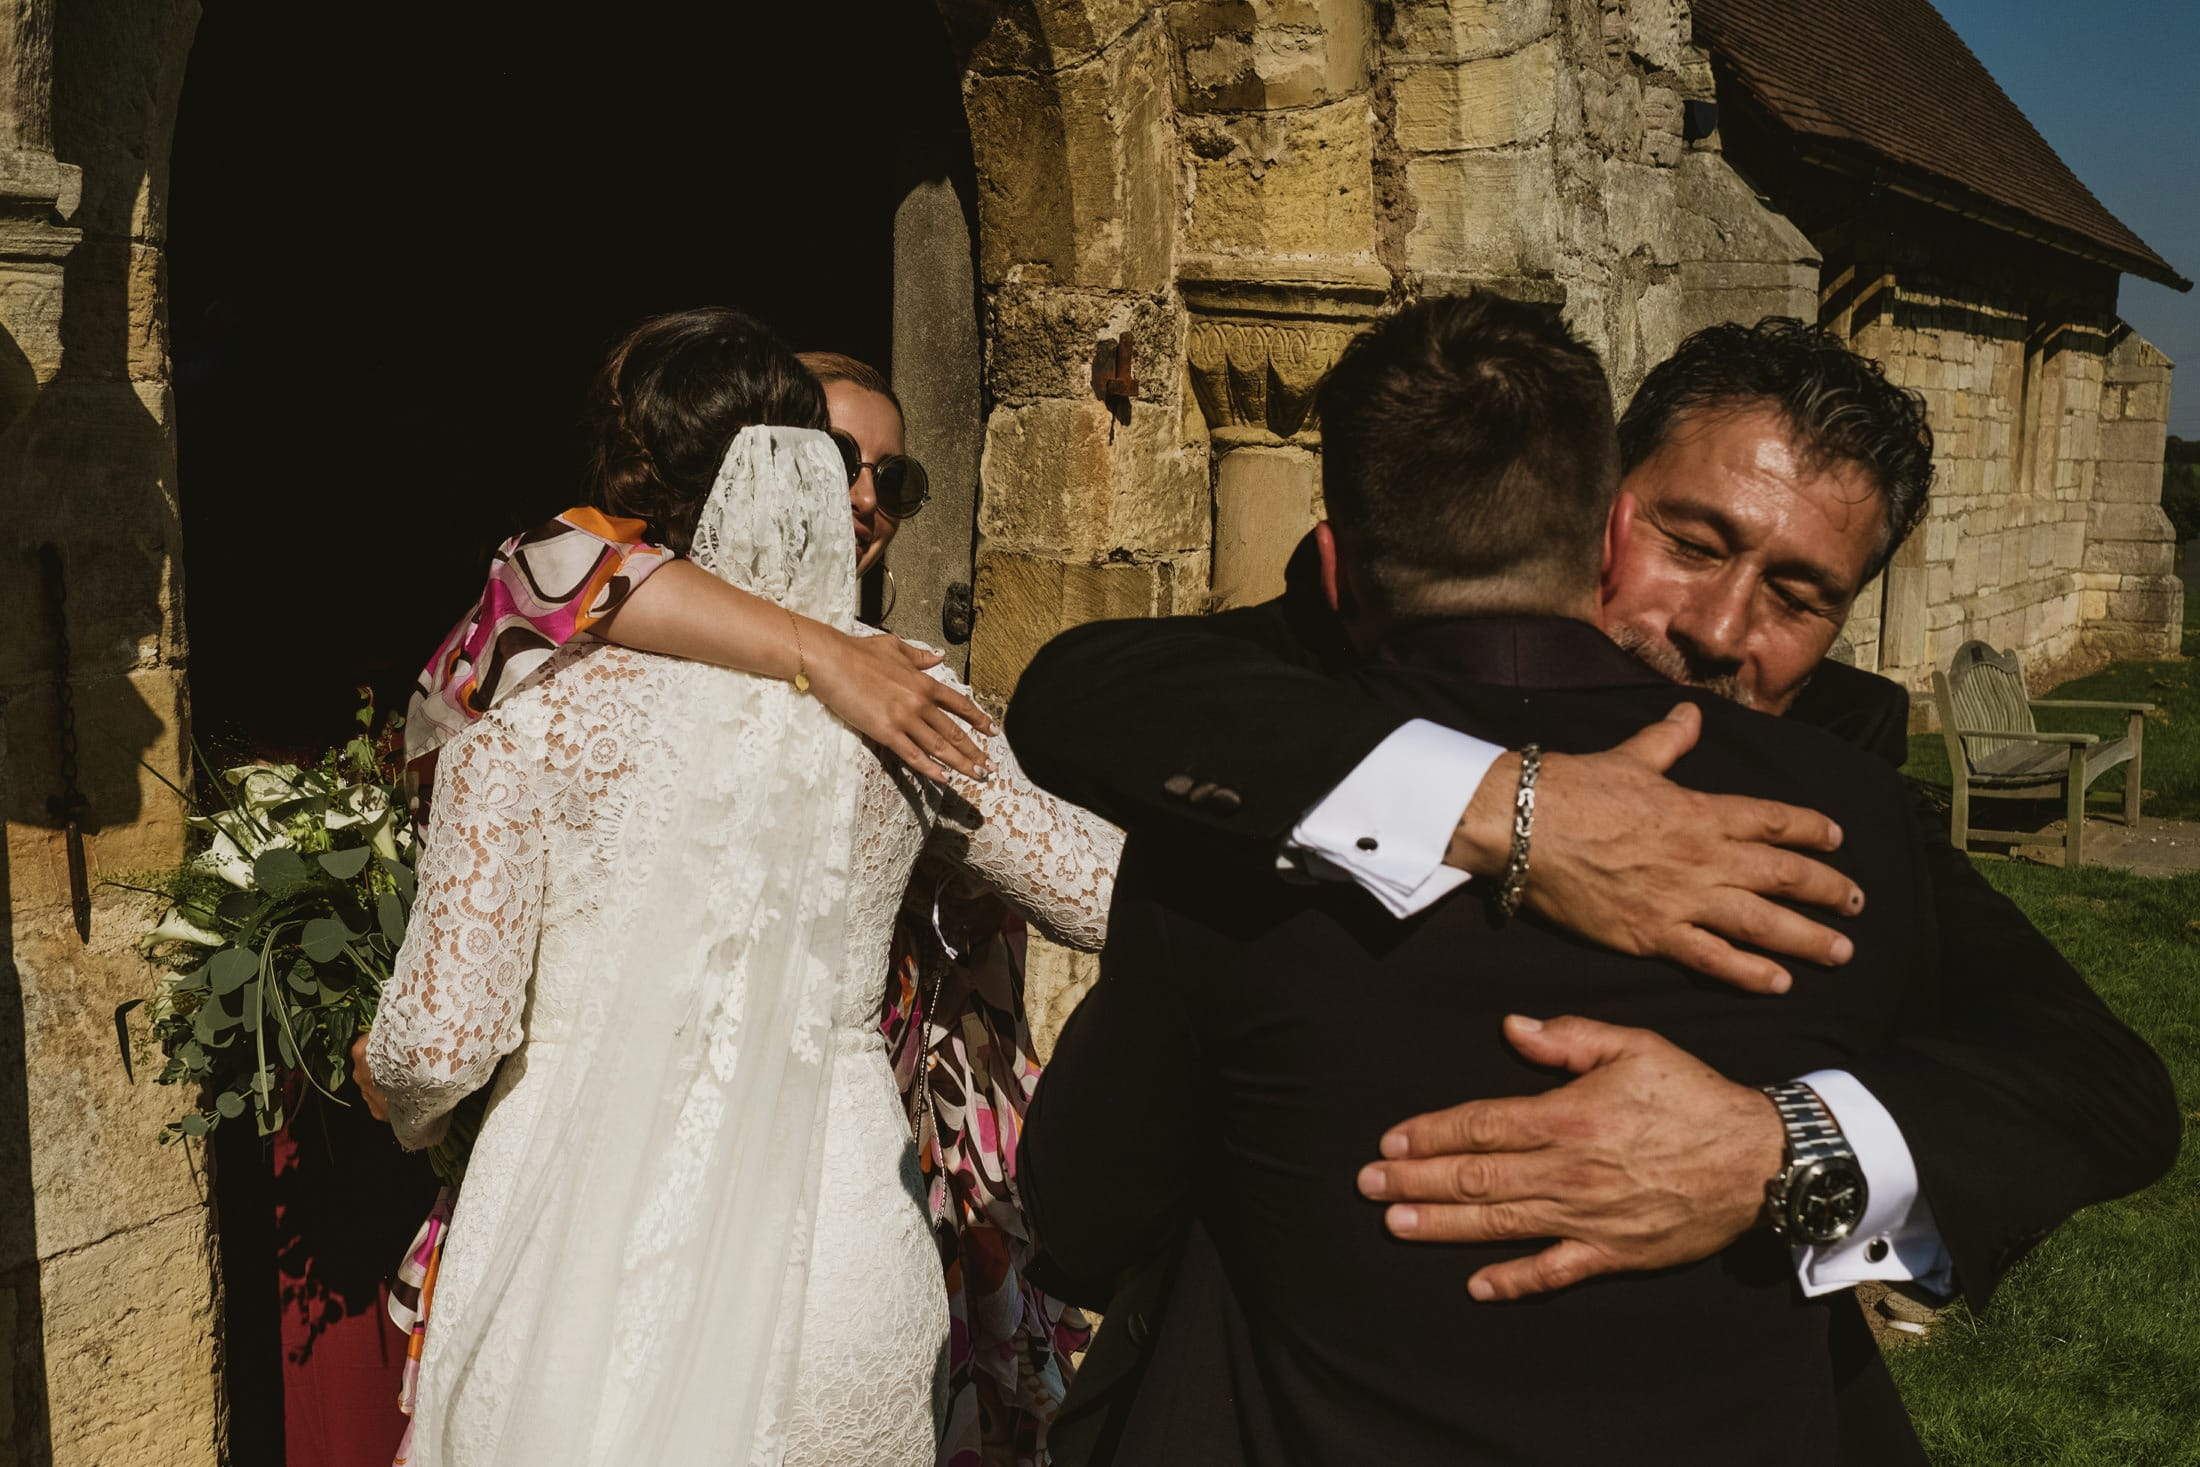 groom hugging bride's dad, bride hugging guest